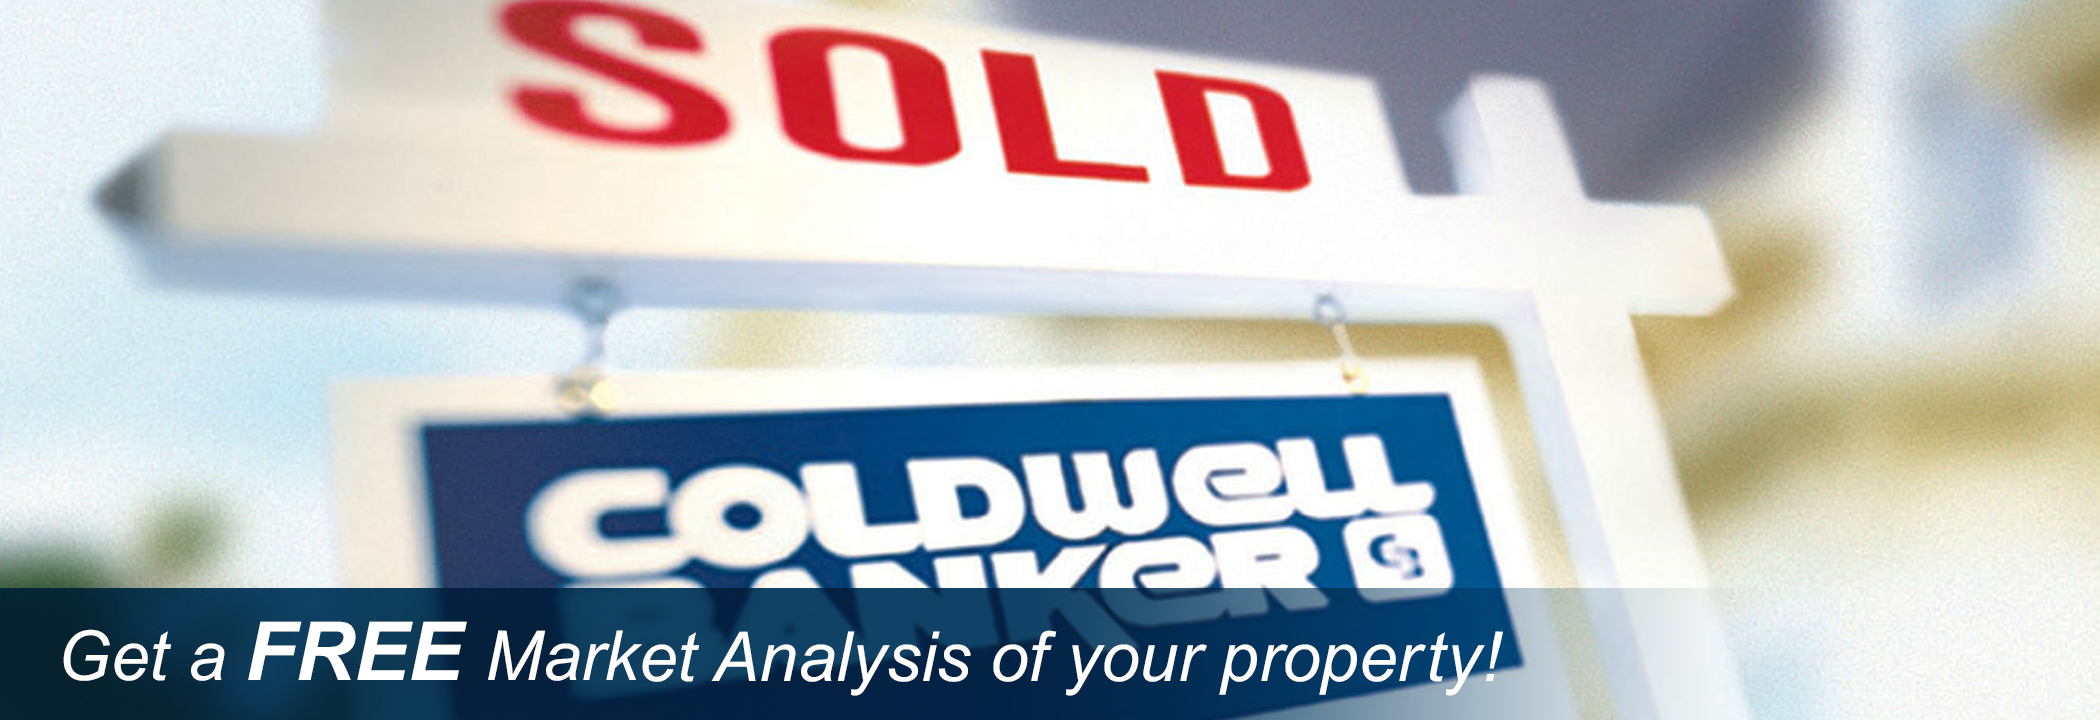 Selling? Get a free market analysis of your property!